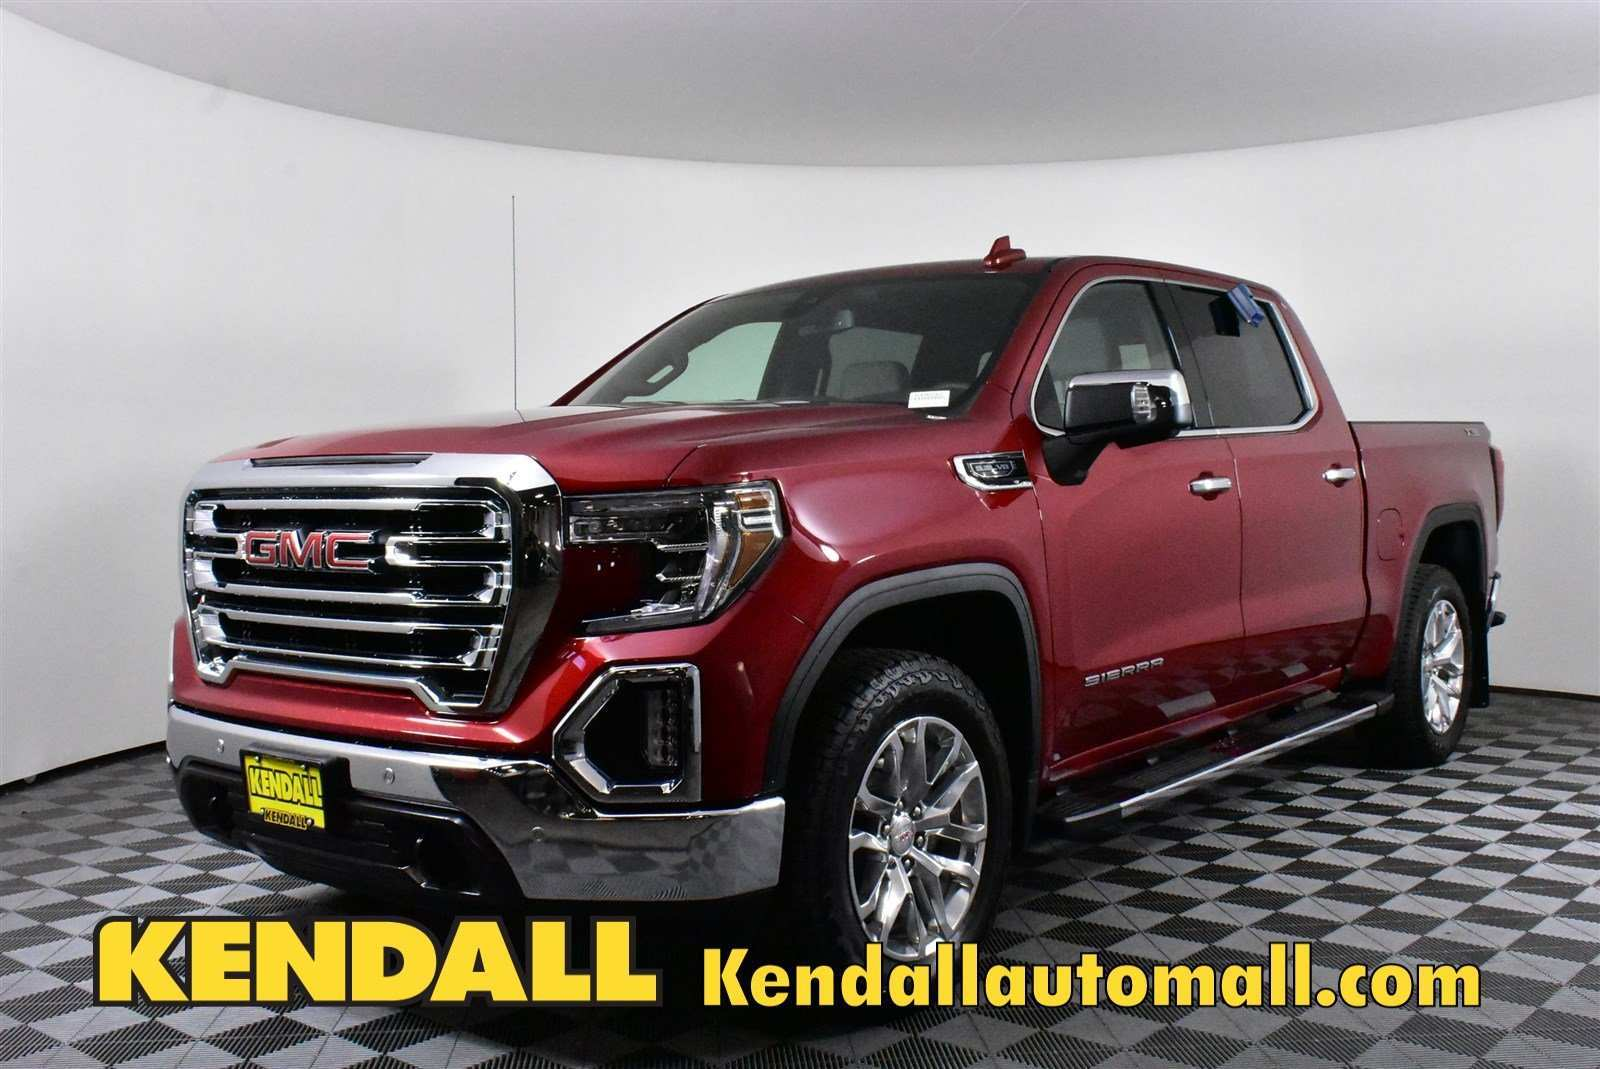 17 Gallery of 2019 Gmc Pickup For Sale Prices with 2019 Gmc Pickup For Sale